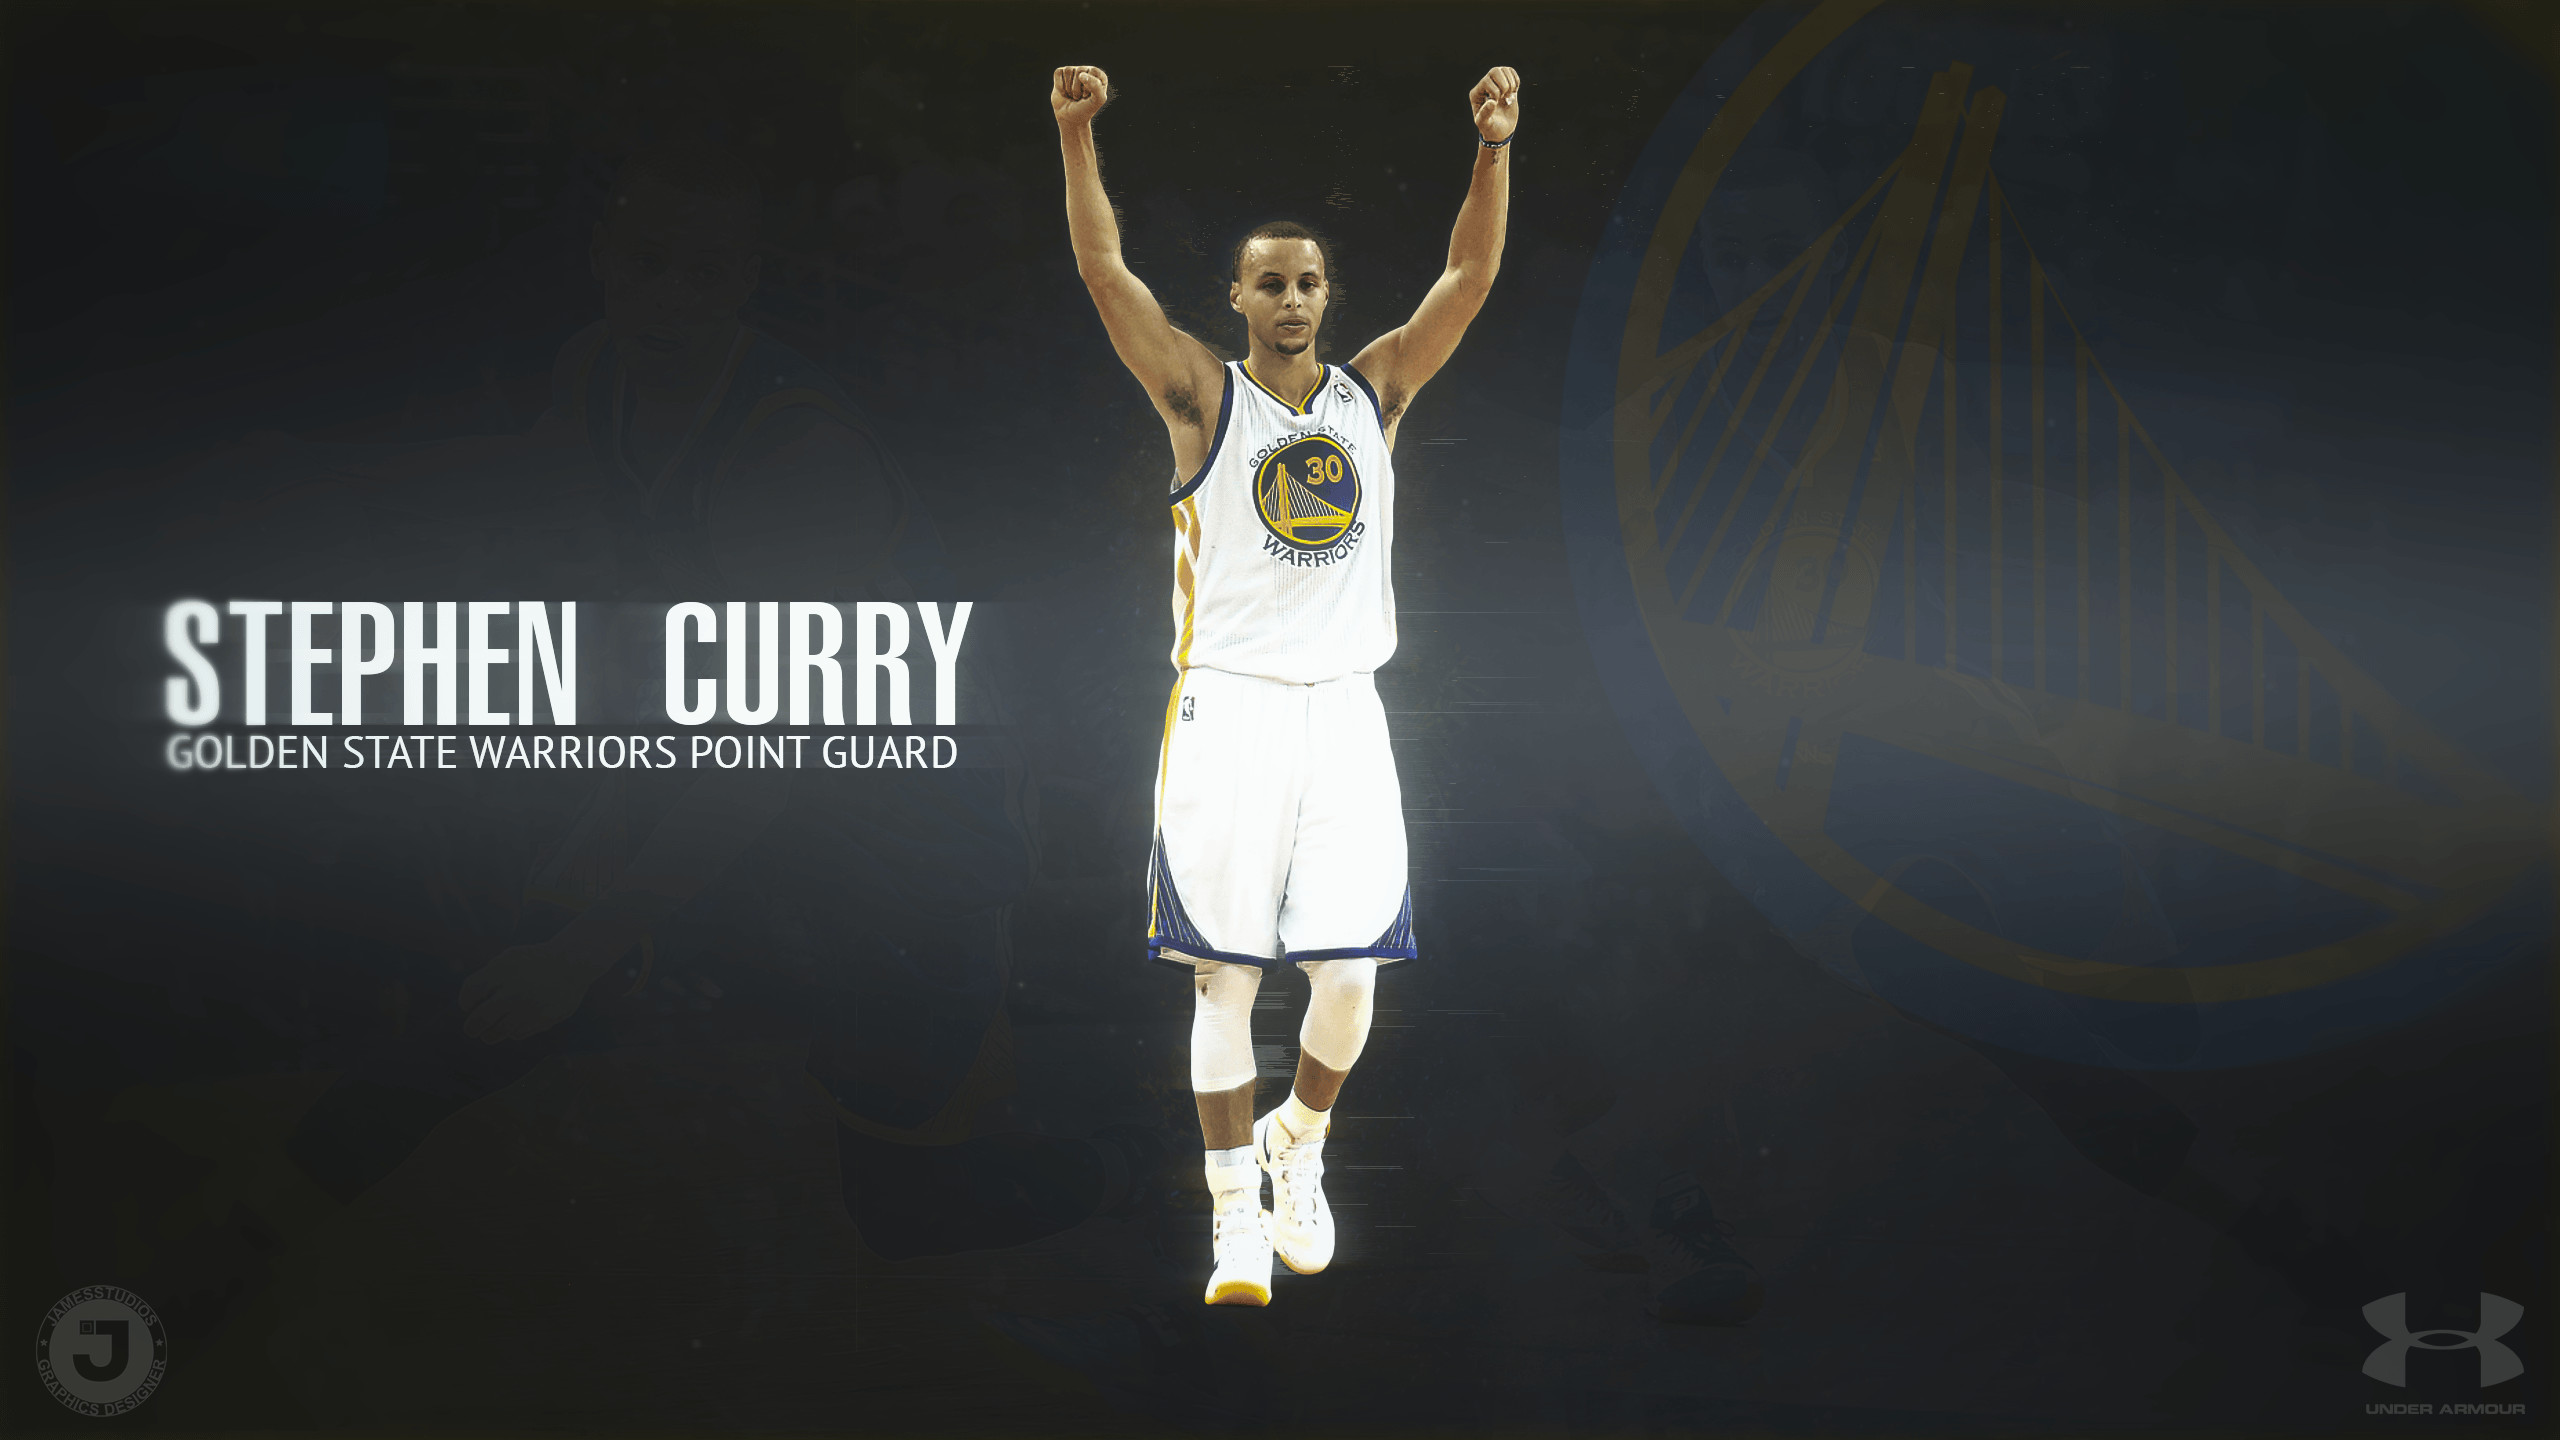 under armour basketball wallpaper - photo #10